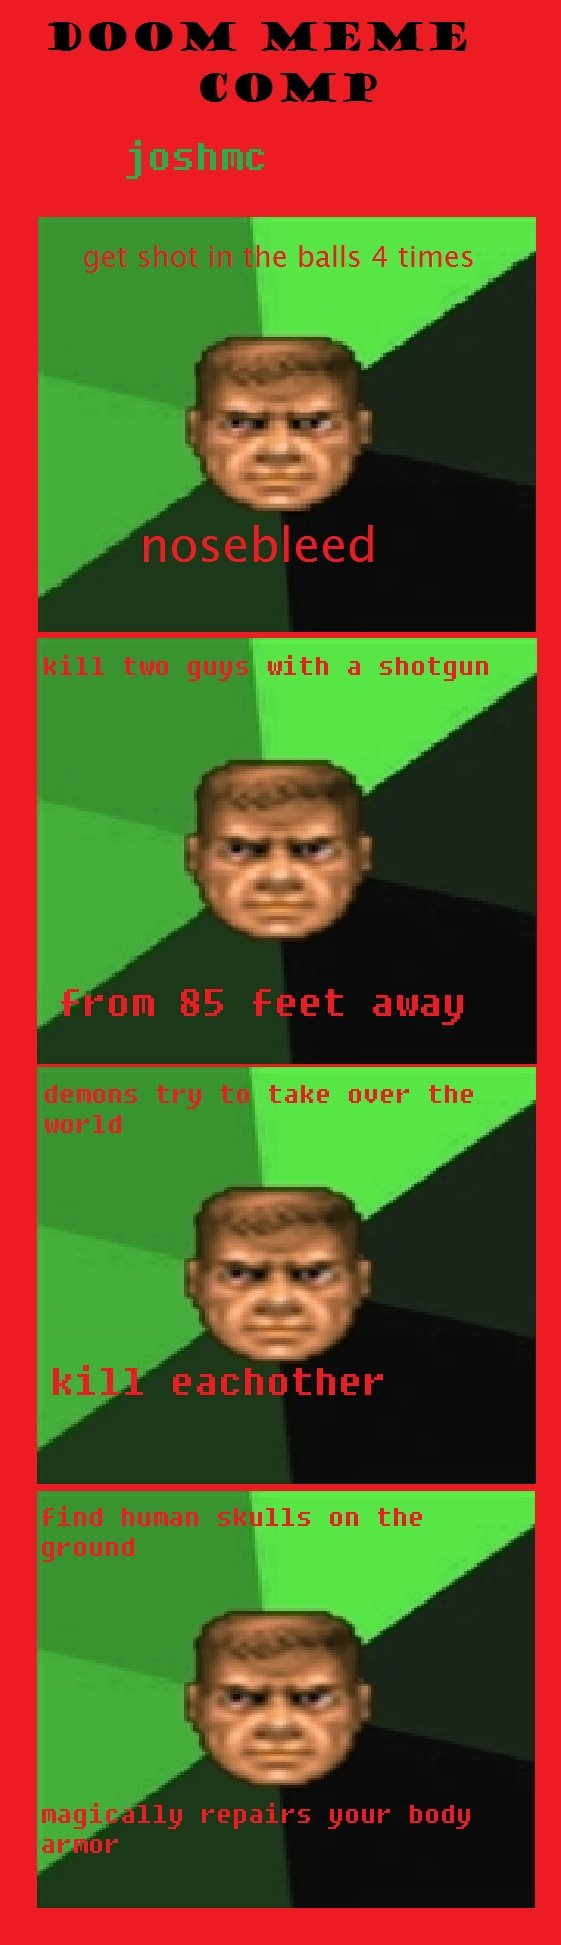 short doom meme comp. i put alot of time into this. joshmc with a take naer the. not bad. try making the pic in the middle a bit smaller so it's less blurry thumbs up